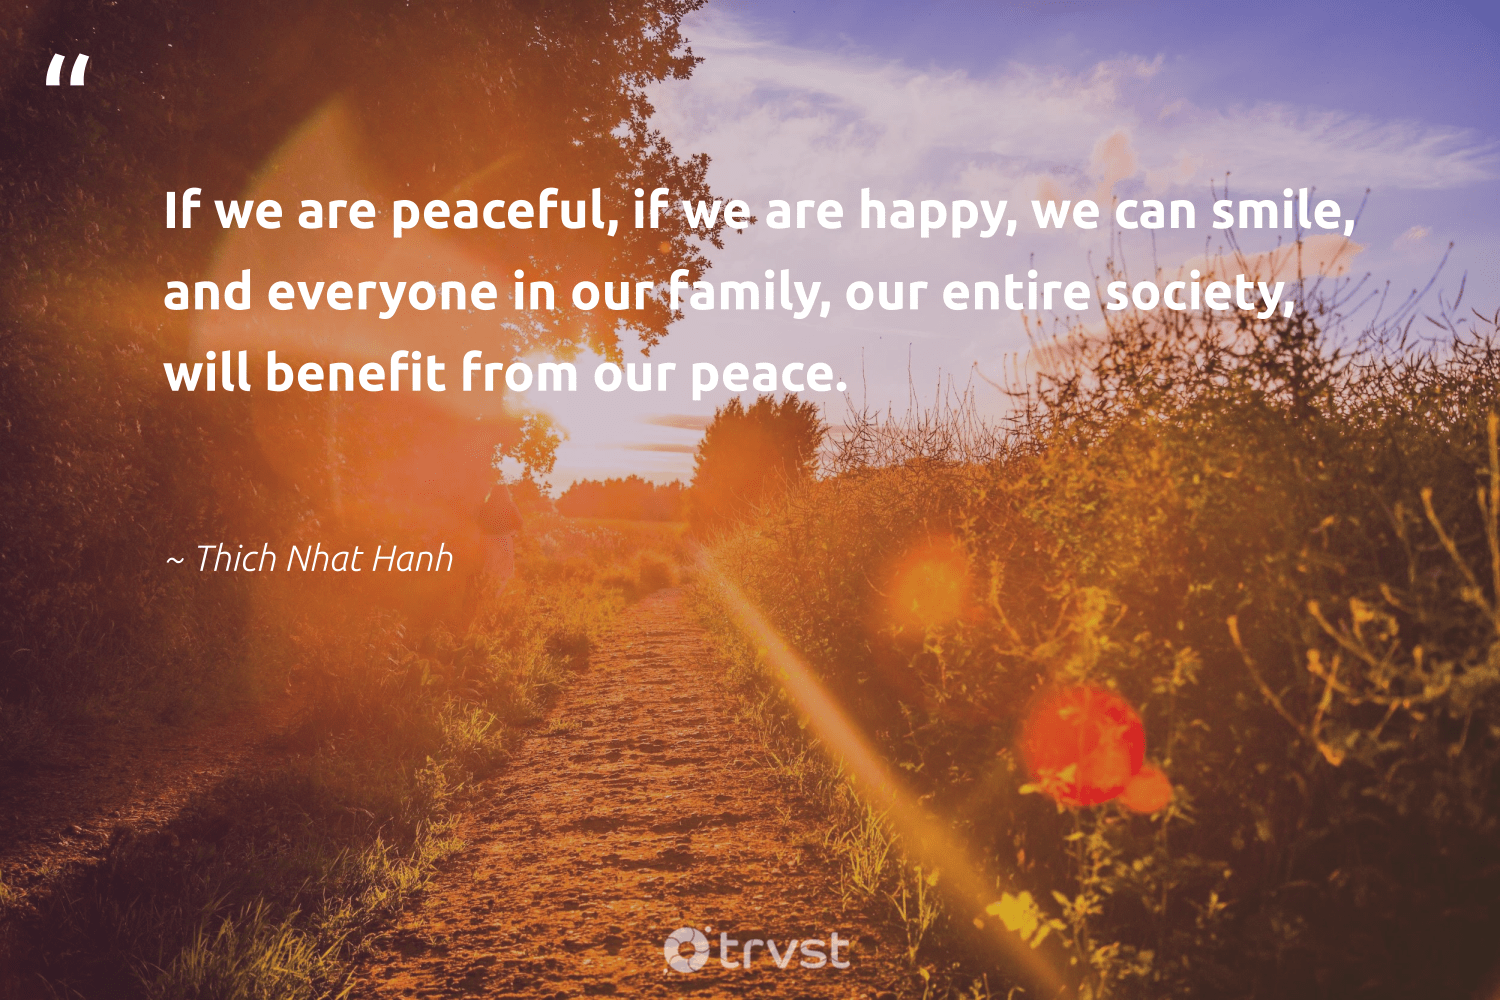 """""""If we are peaceful, if we are happy, we can smile, and everyone in our family, our entire society, will benefit from our peace.""""  - Thich Nhat Hanh #trvst #quotes #peace #society #family #happy #peacefulprotest #dogood #makeadifference #thinkgreen #activist #socialchange"""